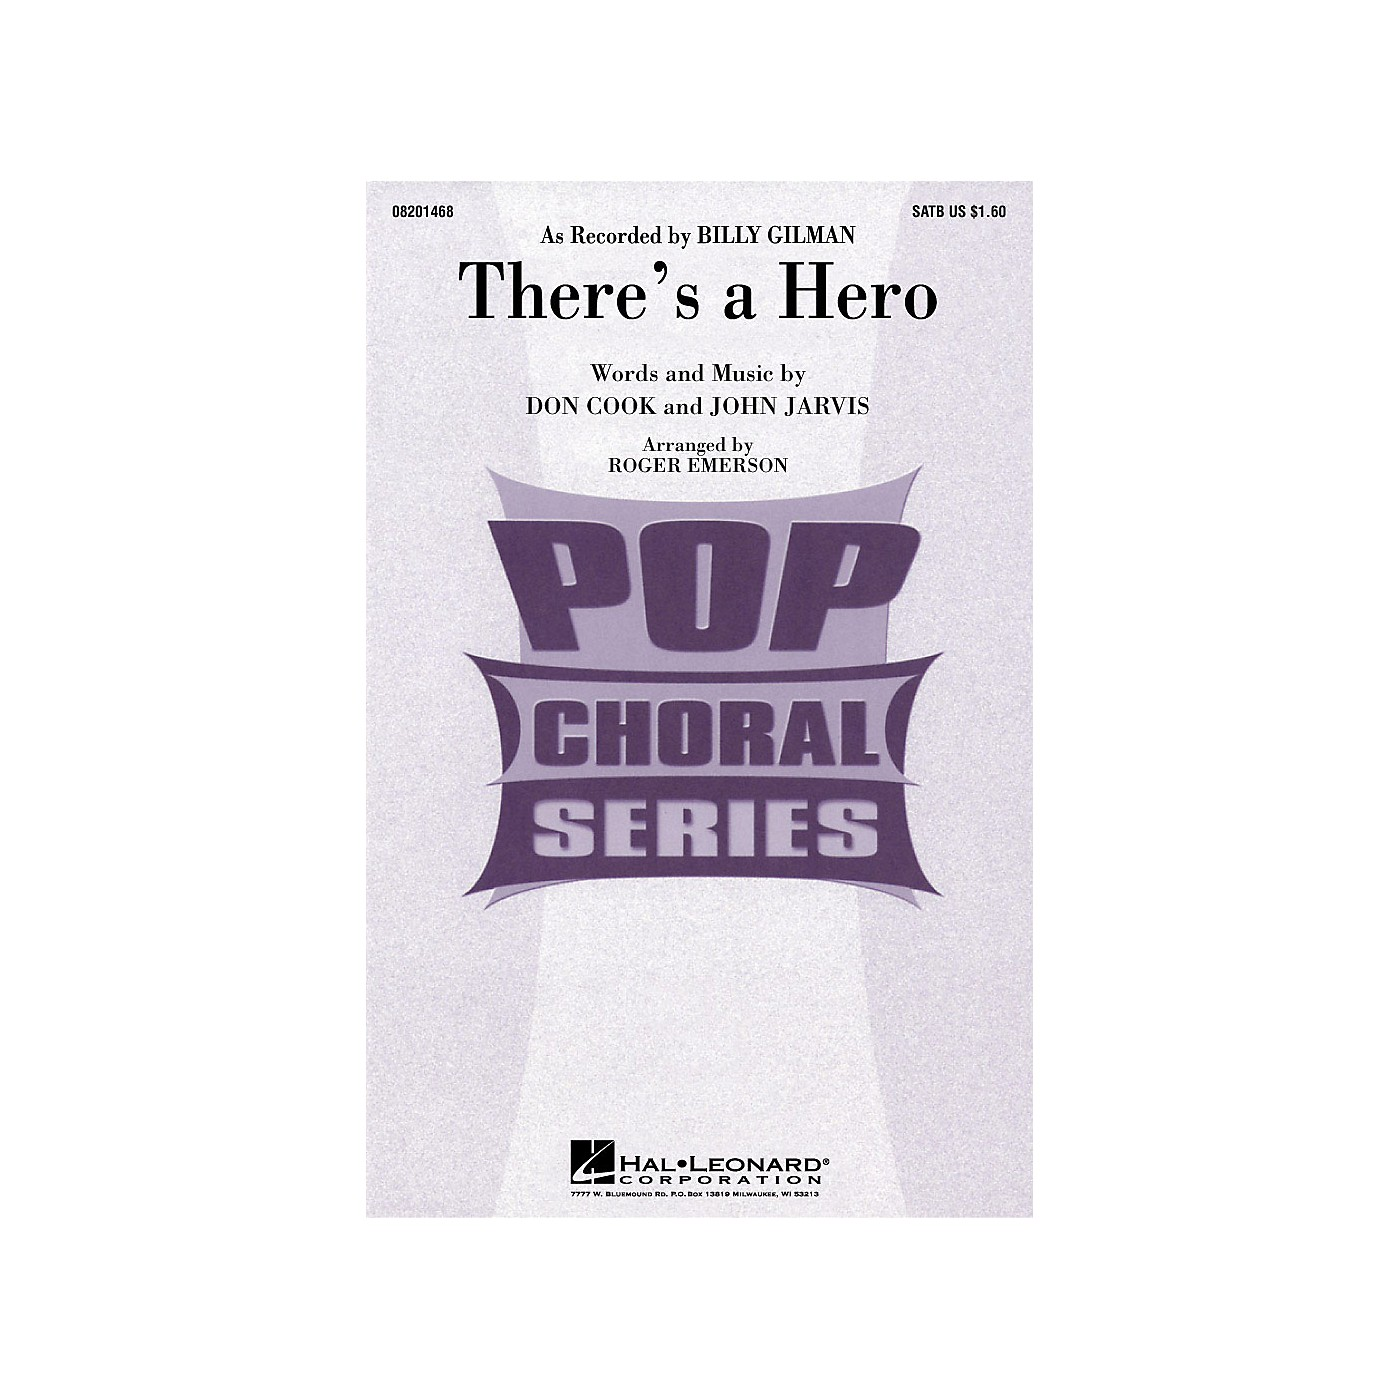 Hal Leonard There's a Hero SATB by Billy Gilman arranged by Roger Emerson thumbnail